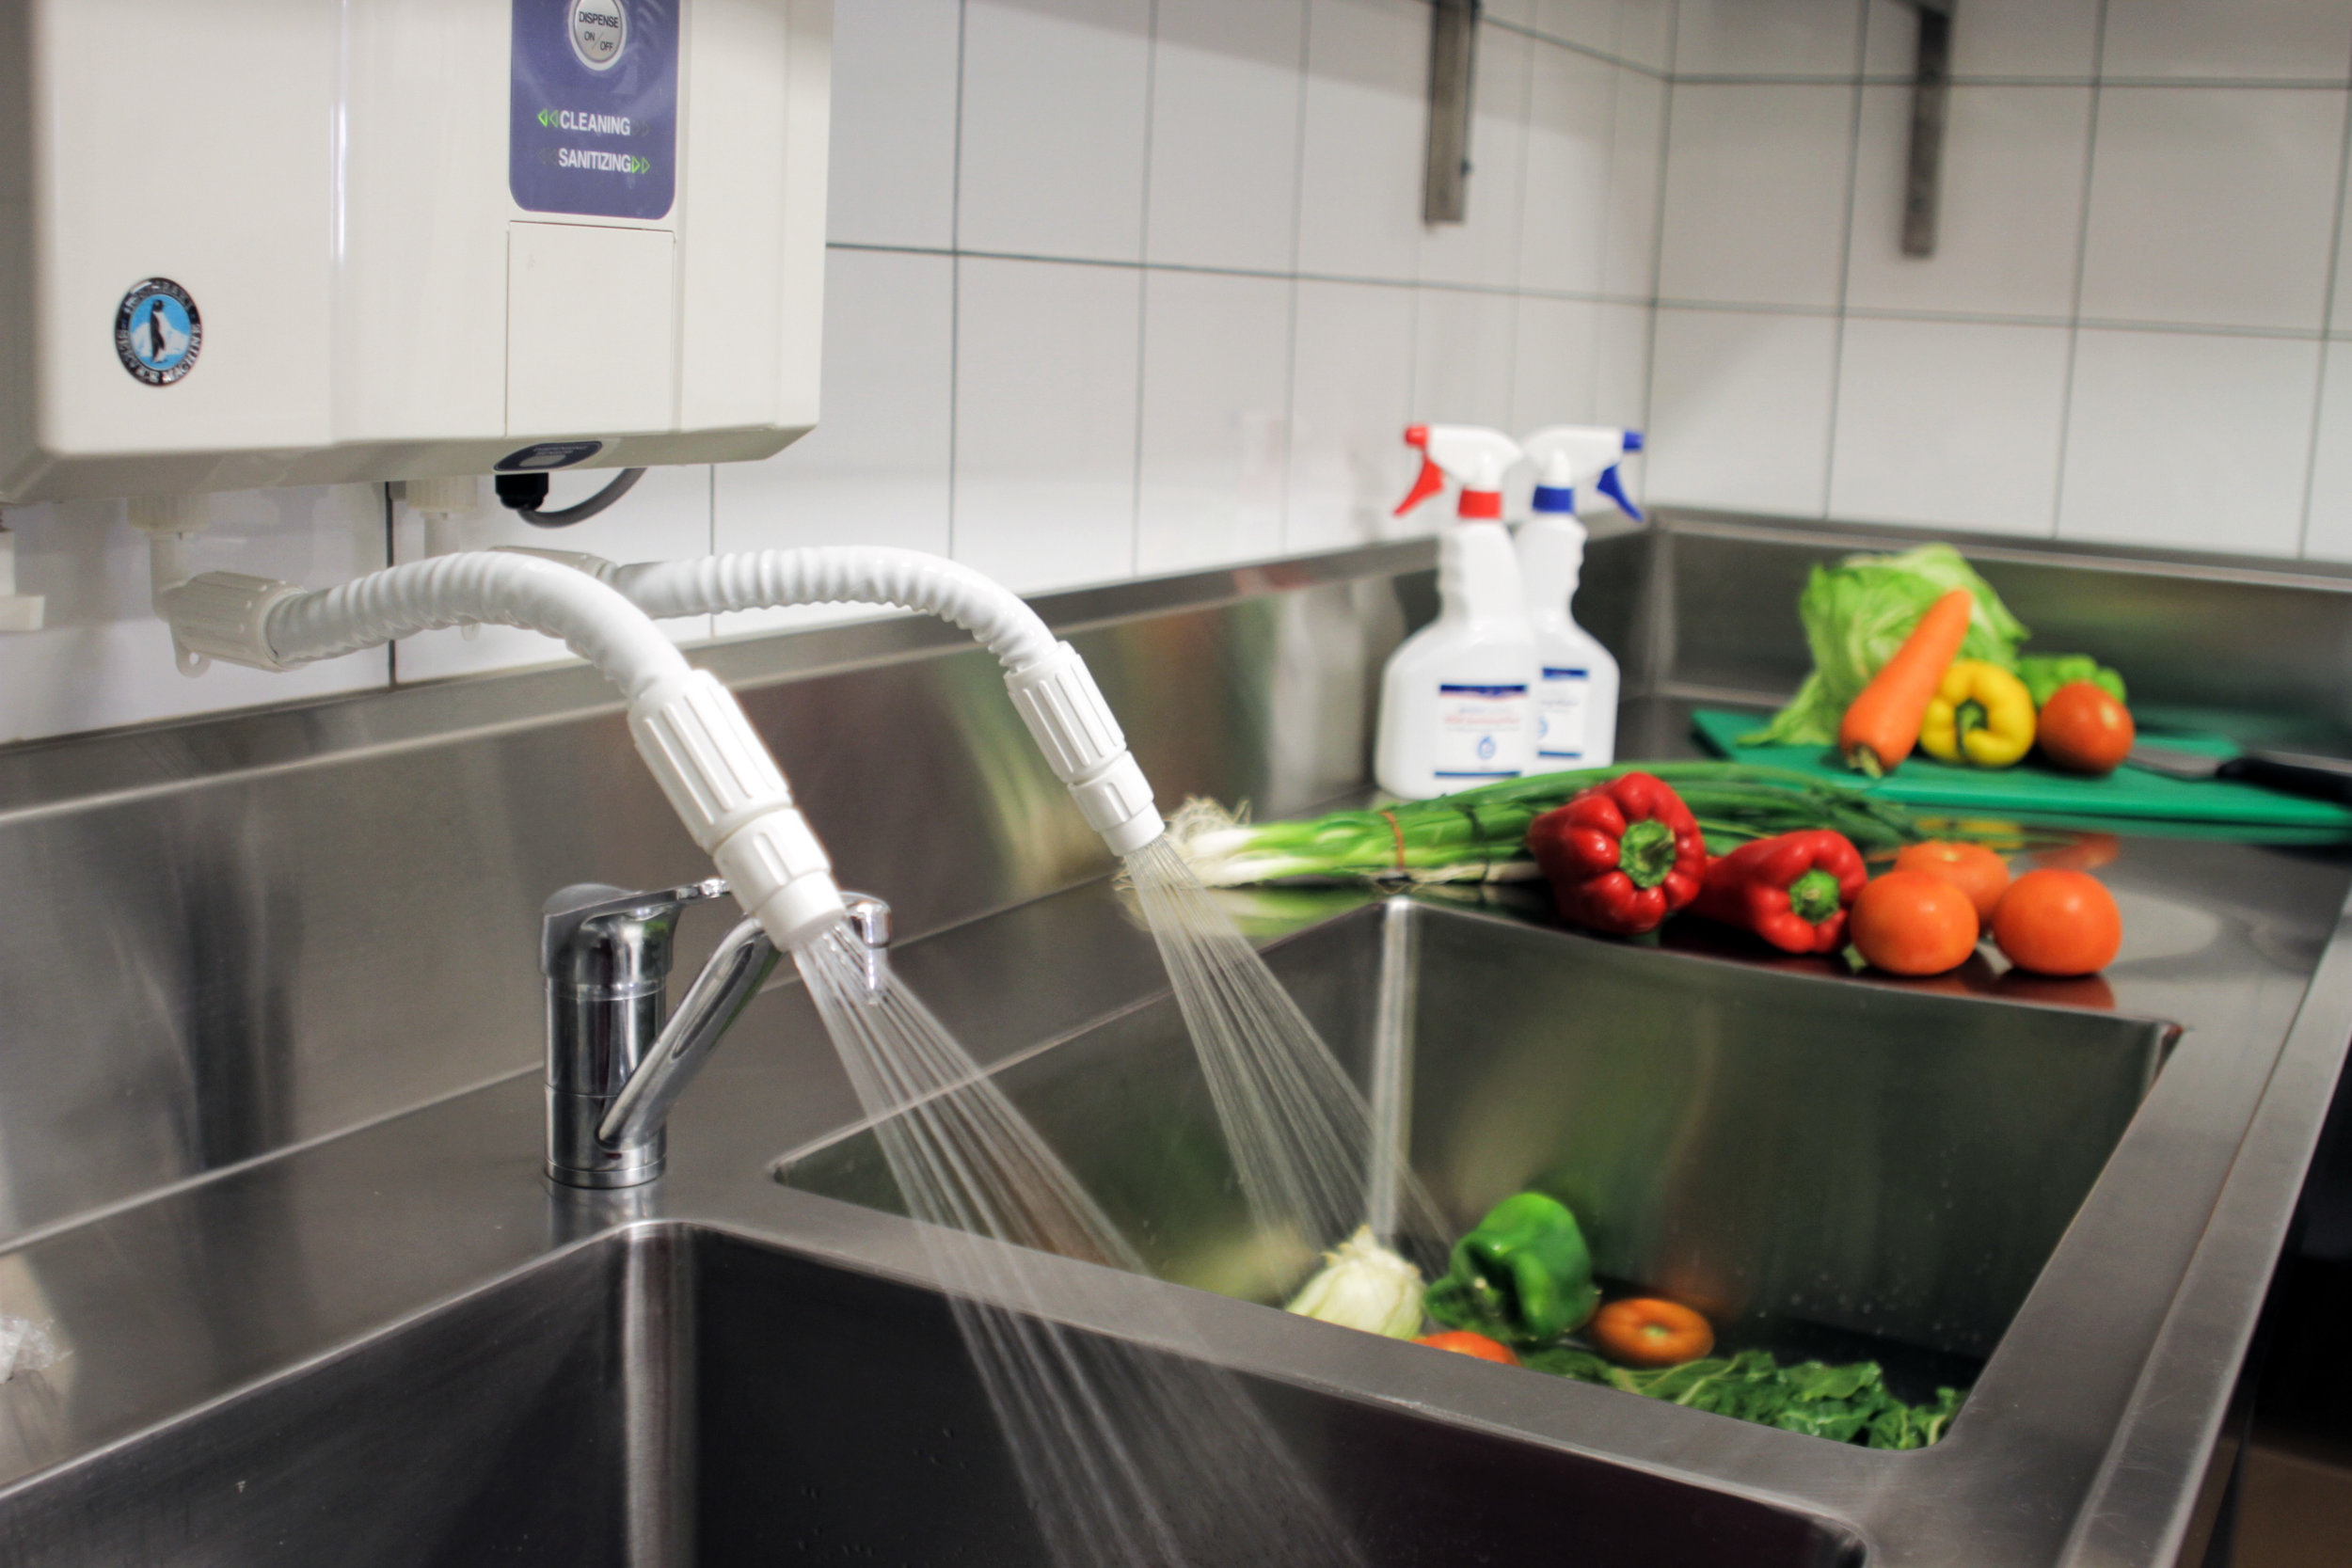 eWater Electrolysed Water System - Cleaning Food